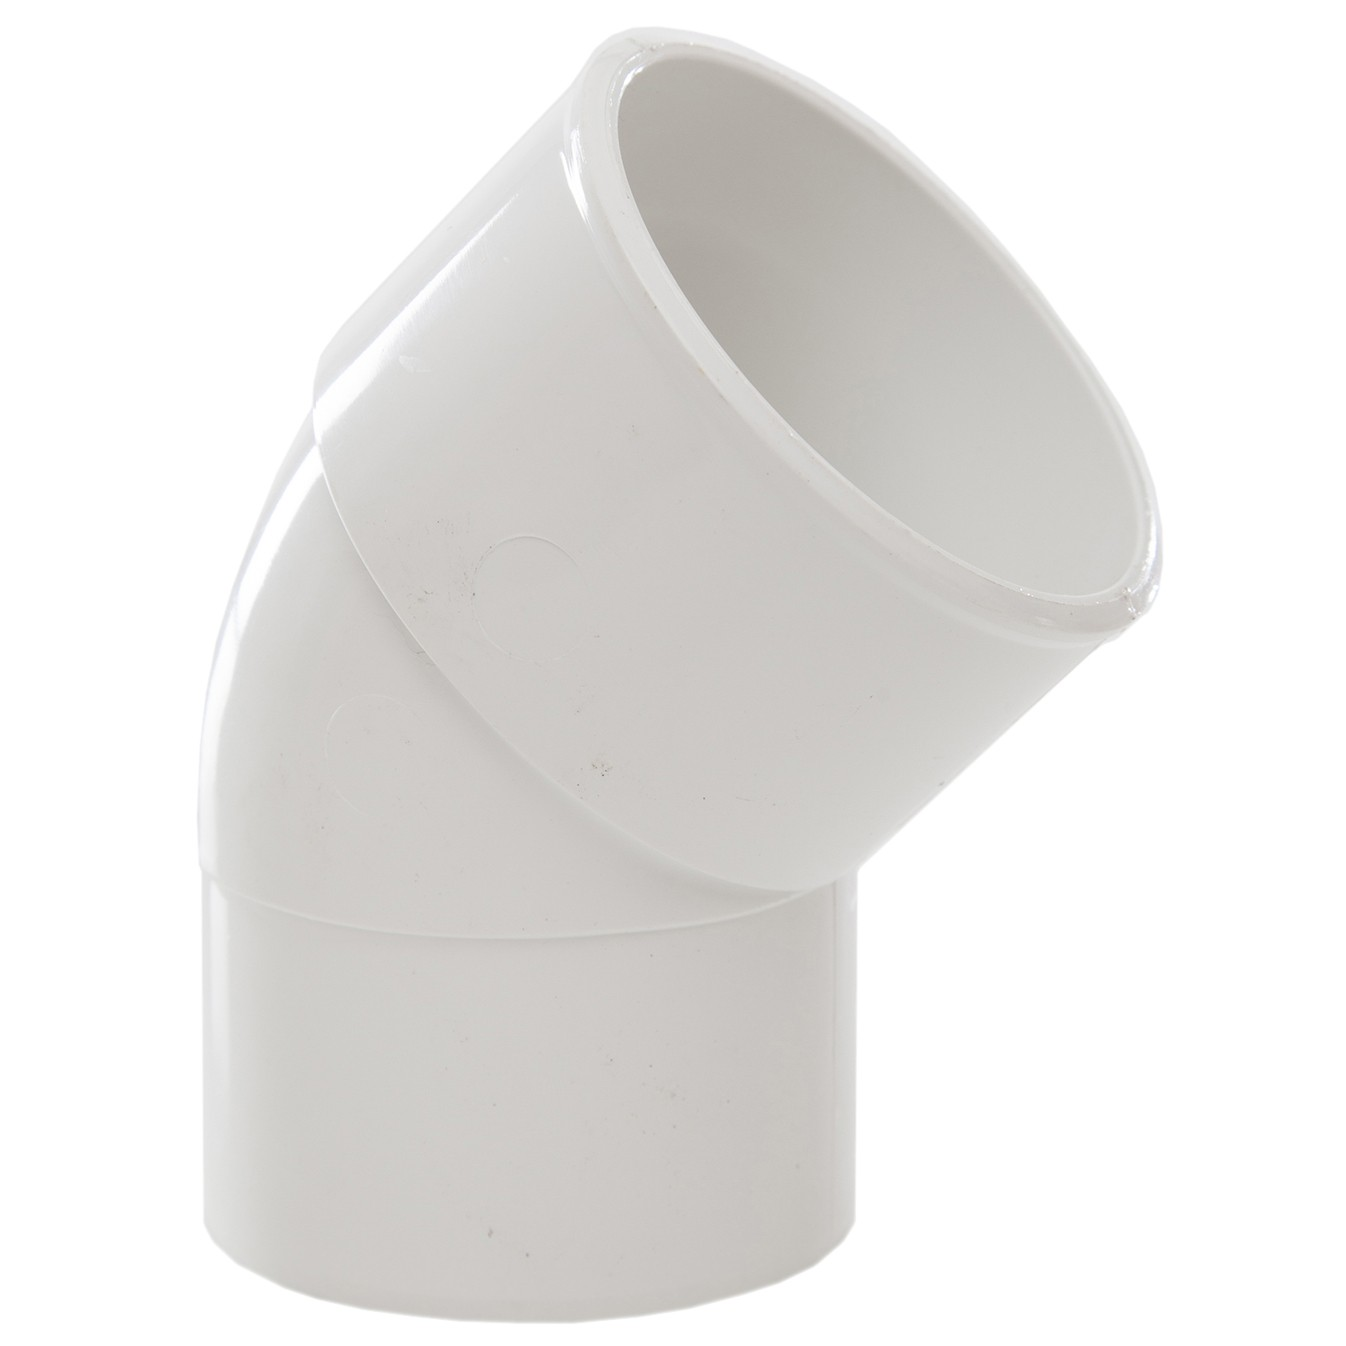 Polypipe 50mm Solvent Weld Waste 45 Degree Spigot Bend - White